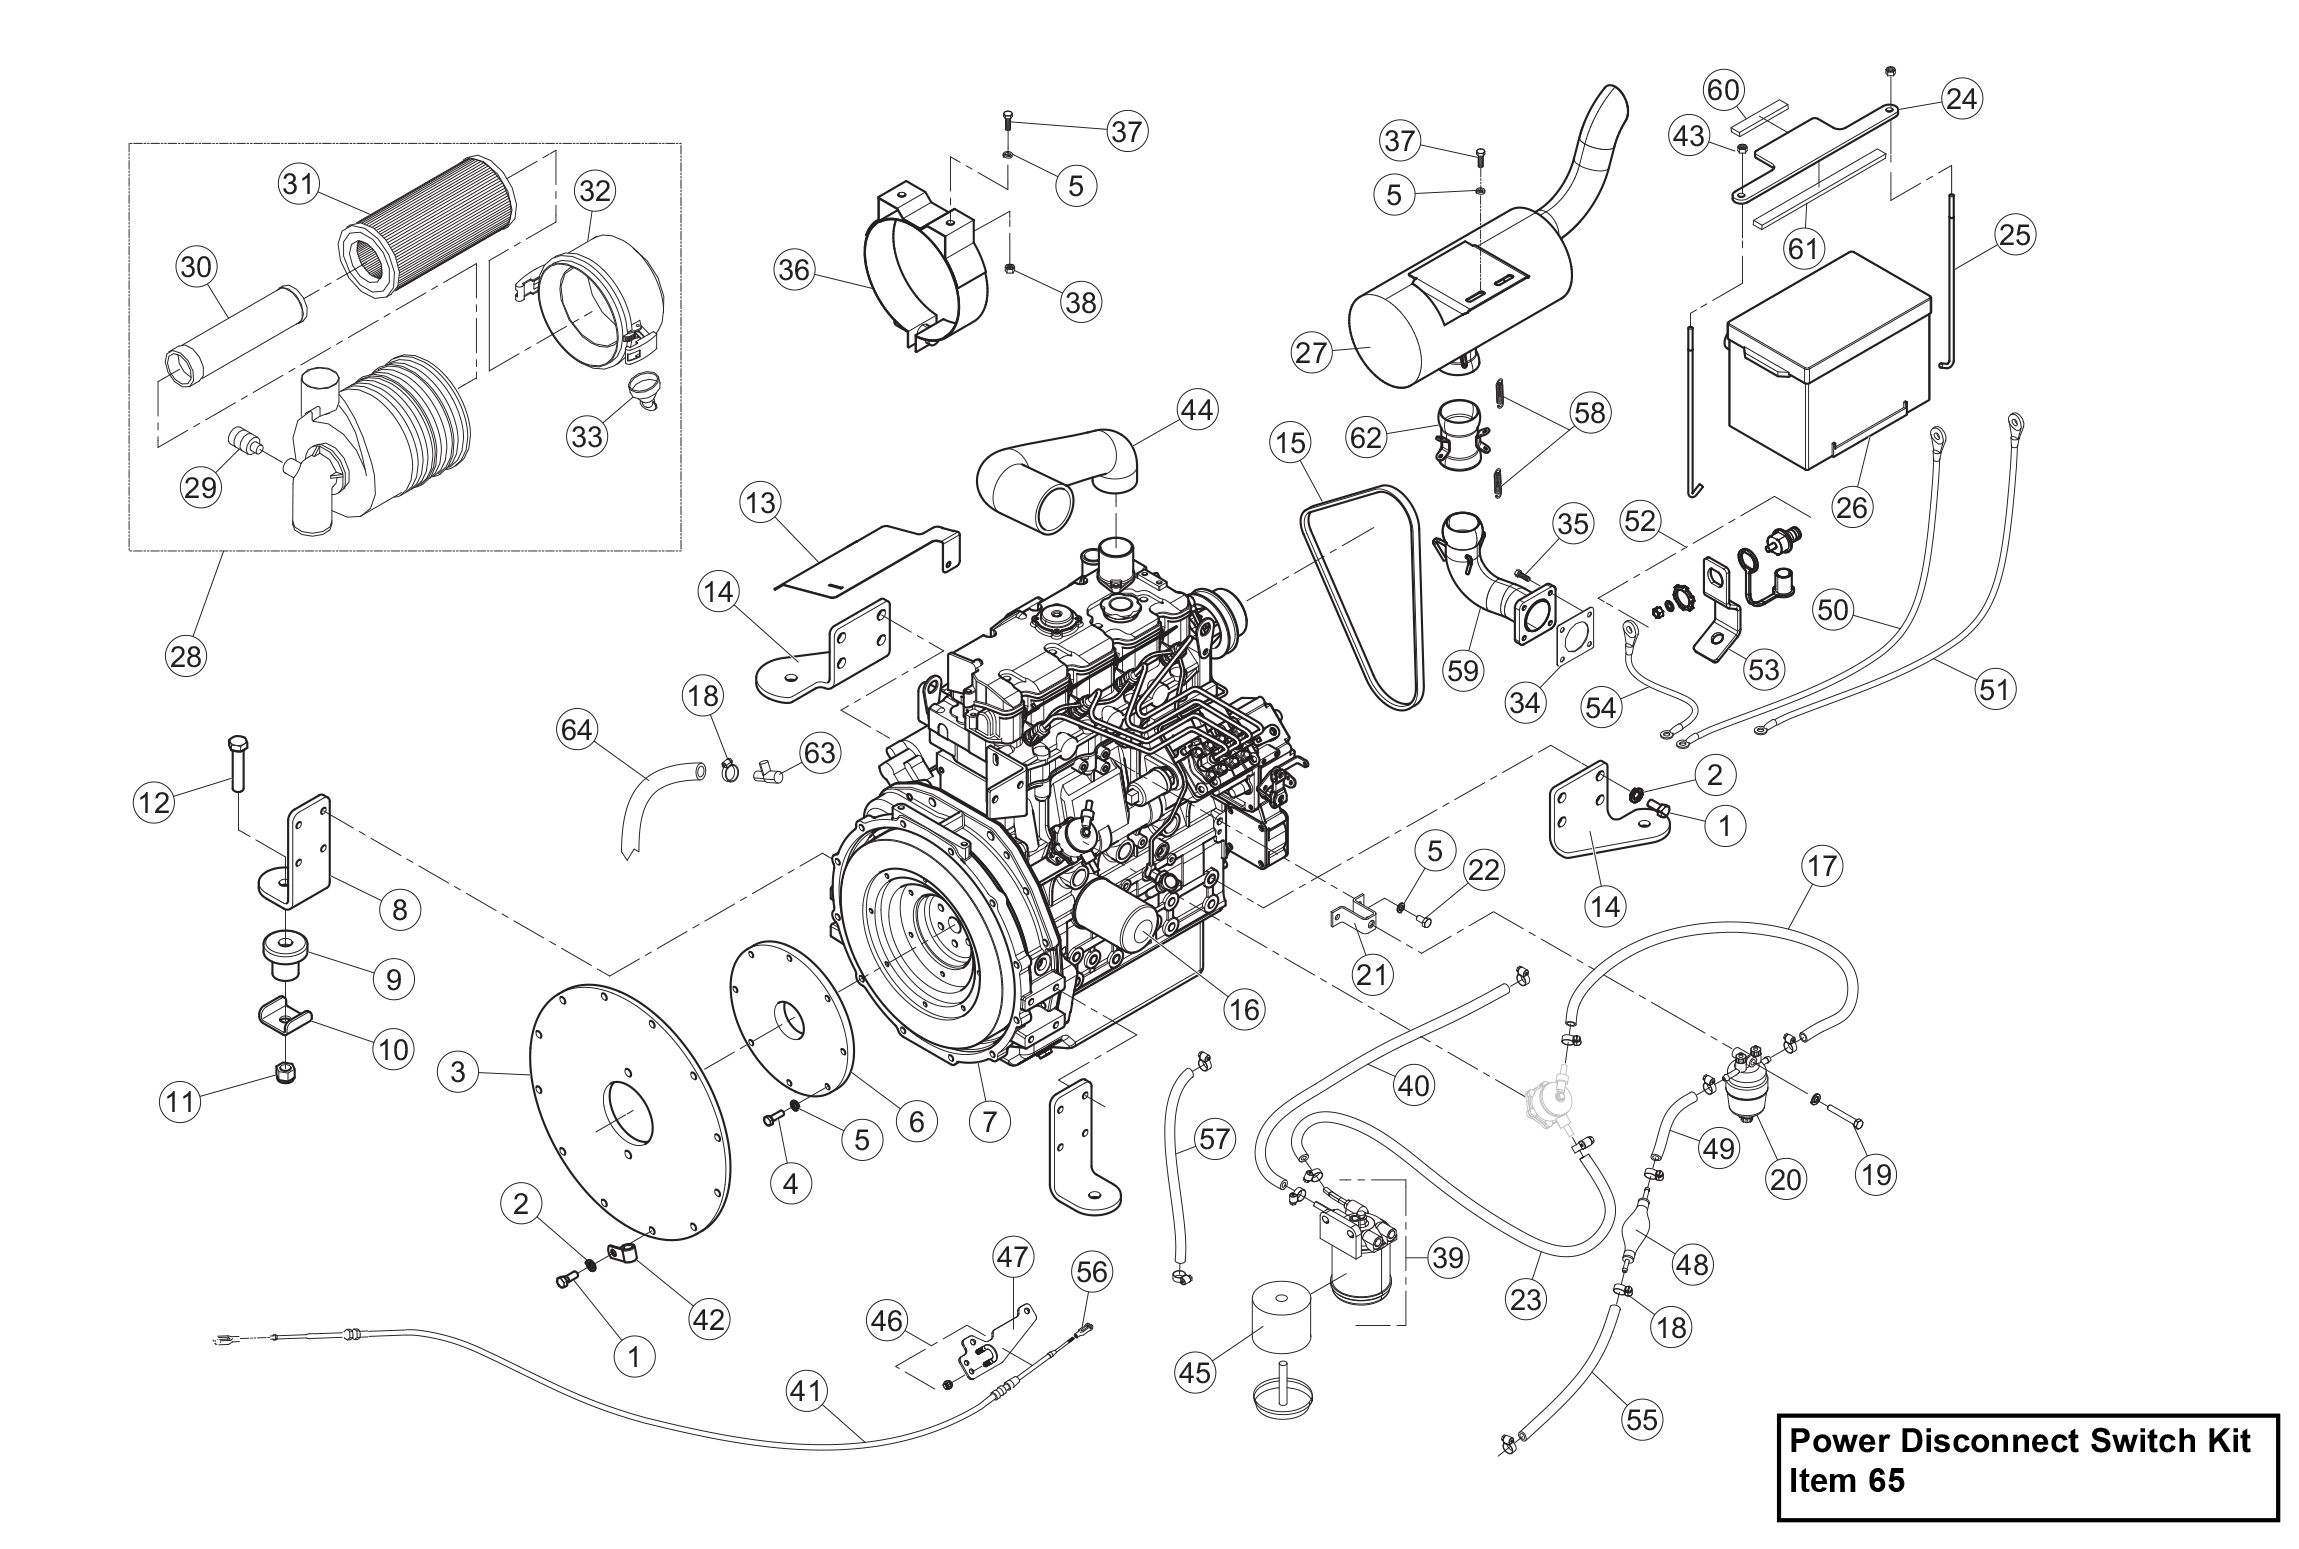 Diagram 18-A Engine Assembly